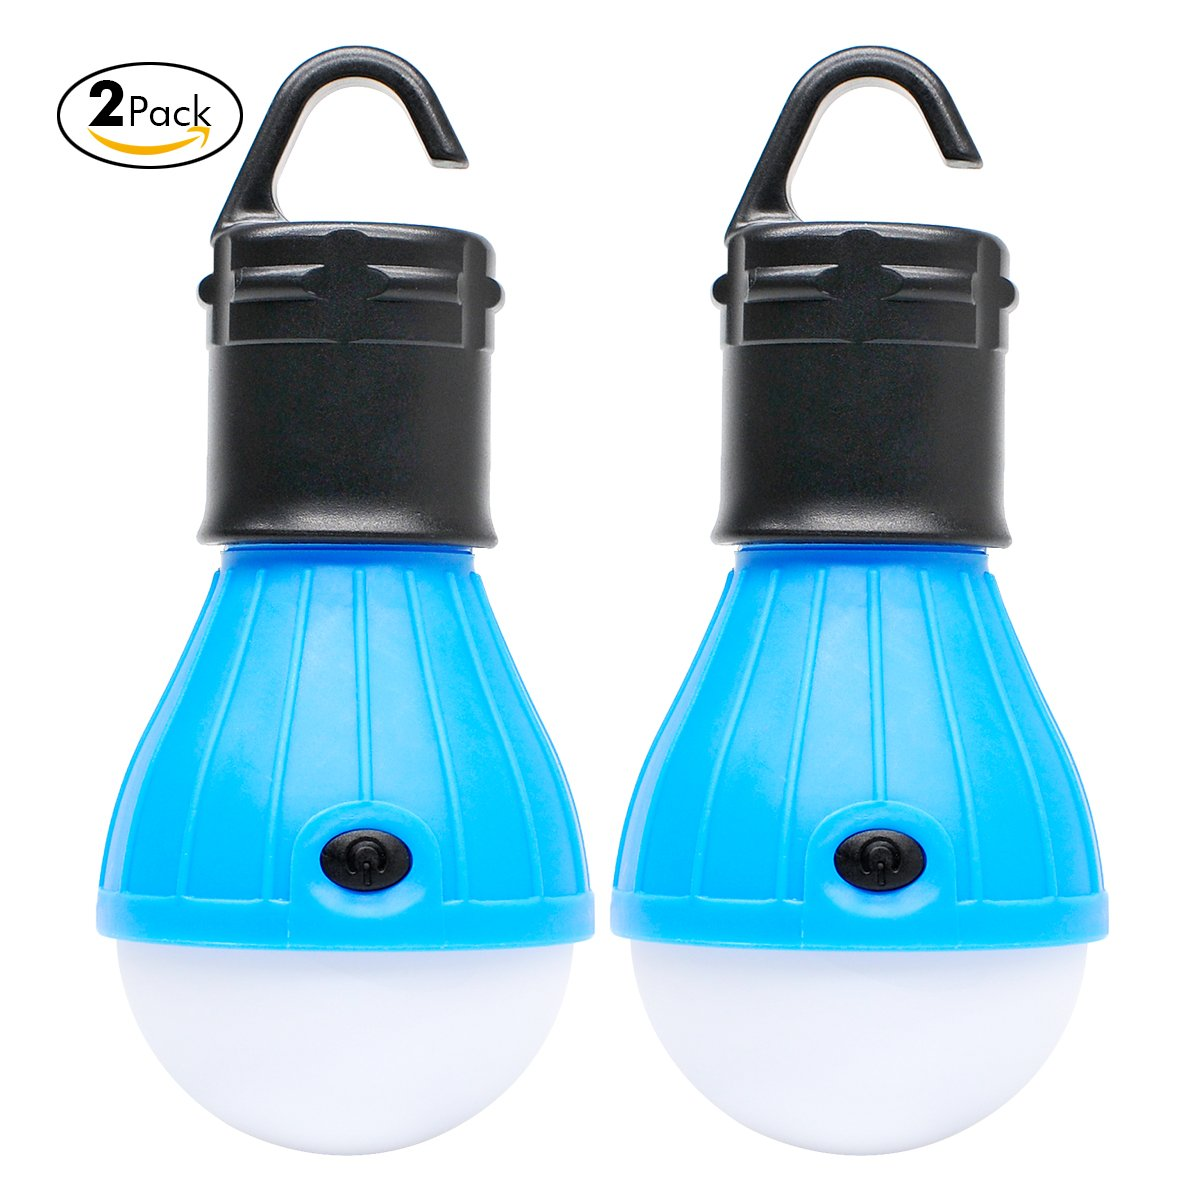 2 Pack Sanniu Portable LED Lantern Tent Light Bulb for Camping Hiking Fishing Emergency Light, Battery Powered Camping Equipment Gear Gadgets Lamp for Outdoor & Indoor(BLUE)